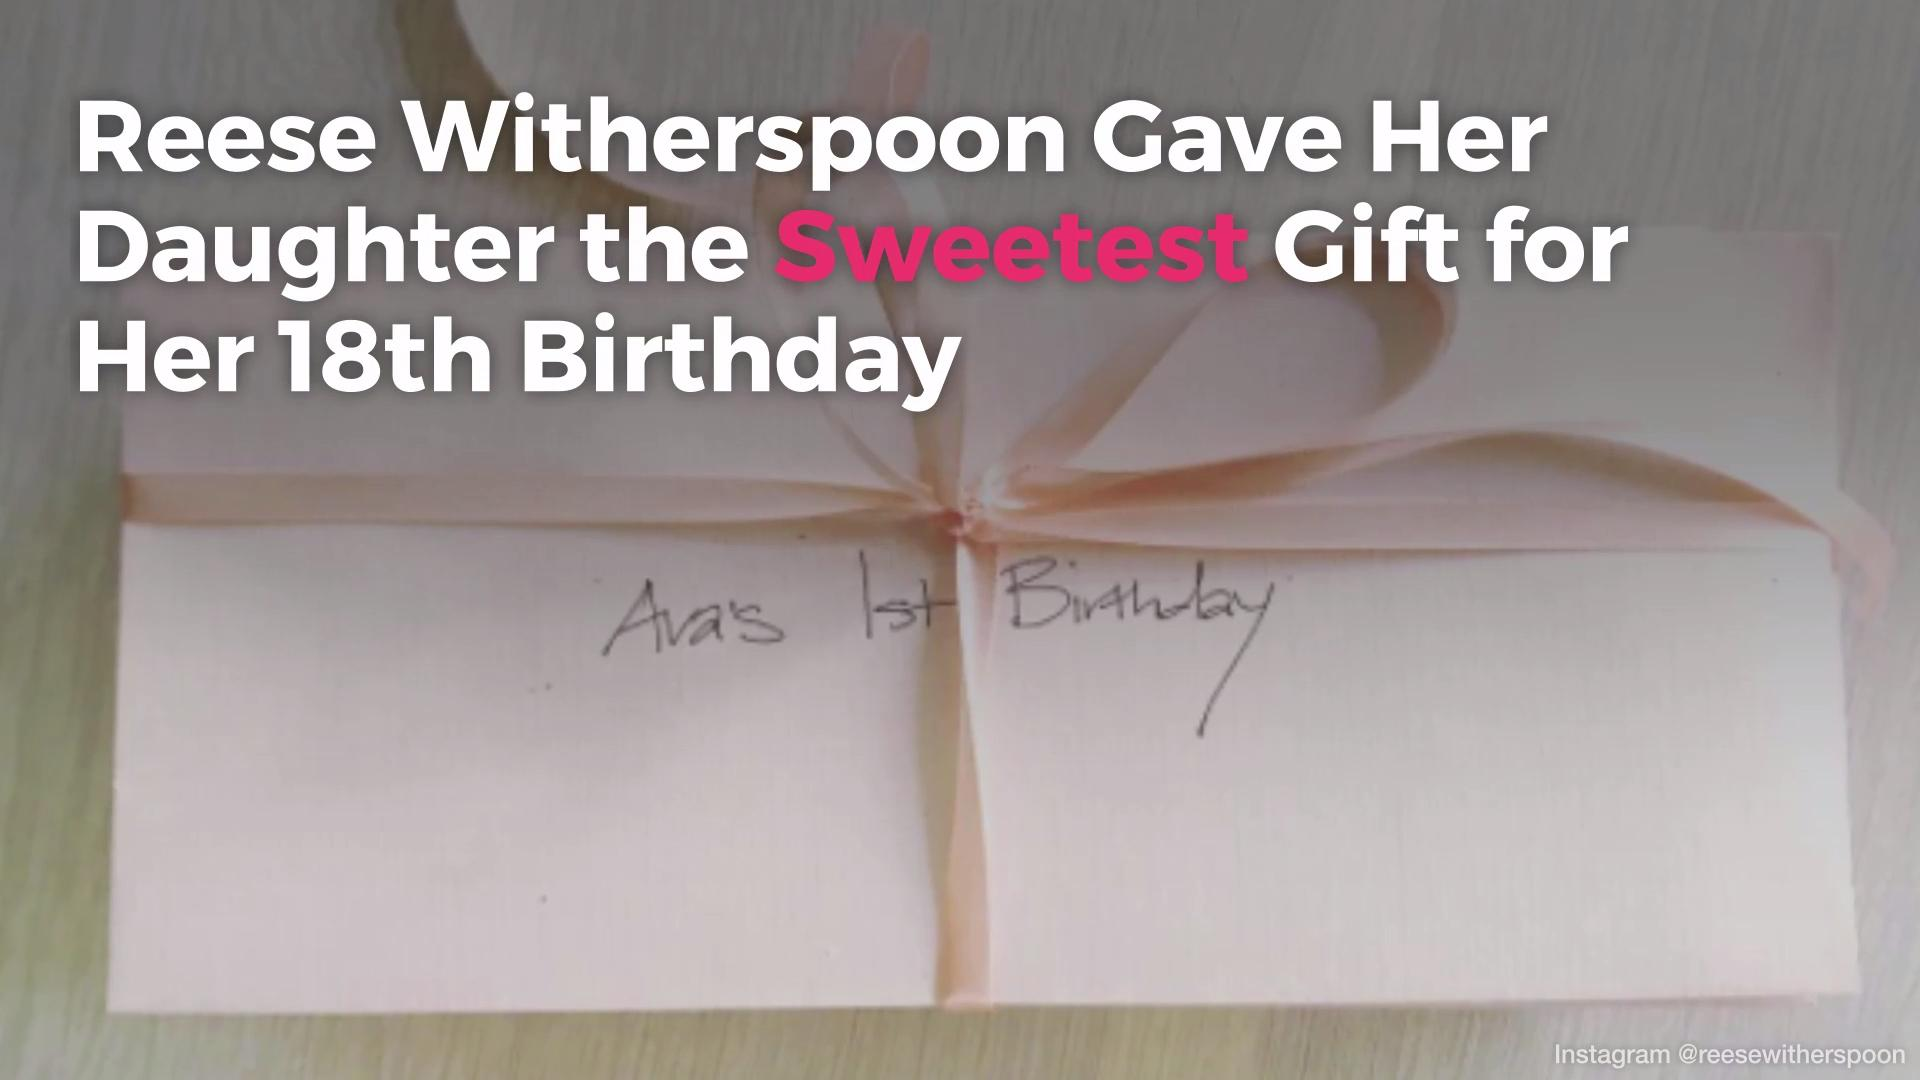 Reese Witherspoon Gave Her Daughter The Sweetest Gift For 18th Birthday